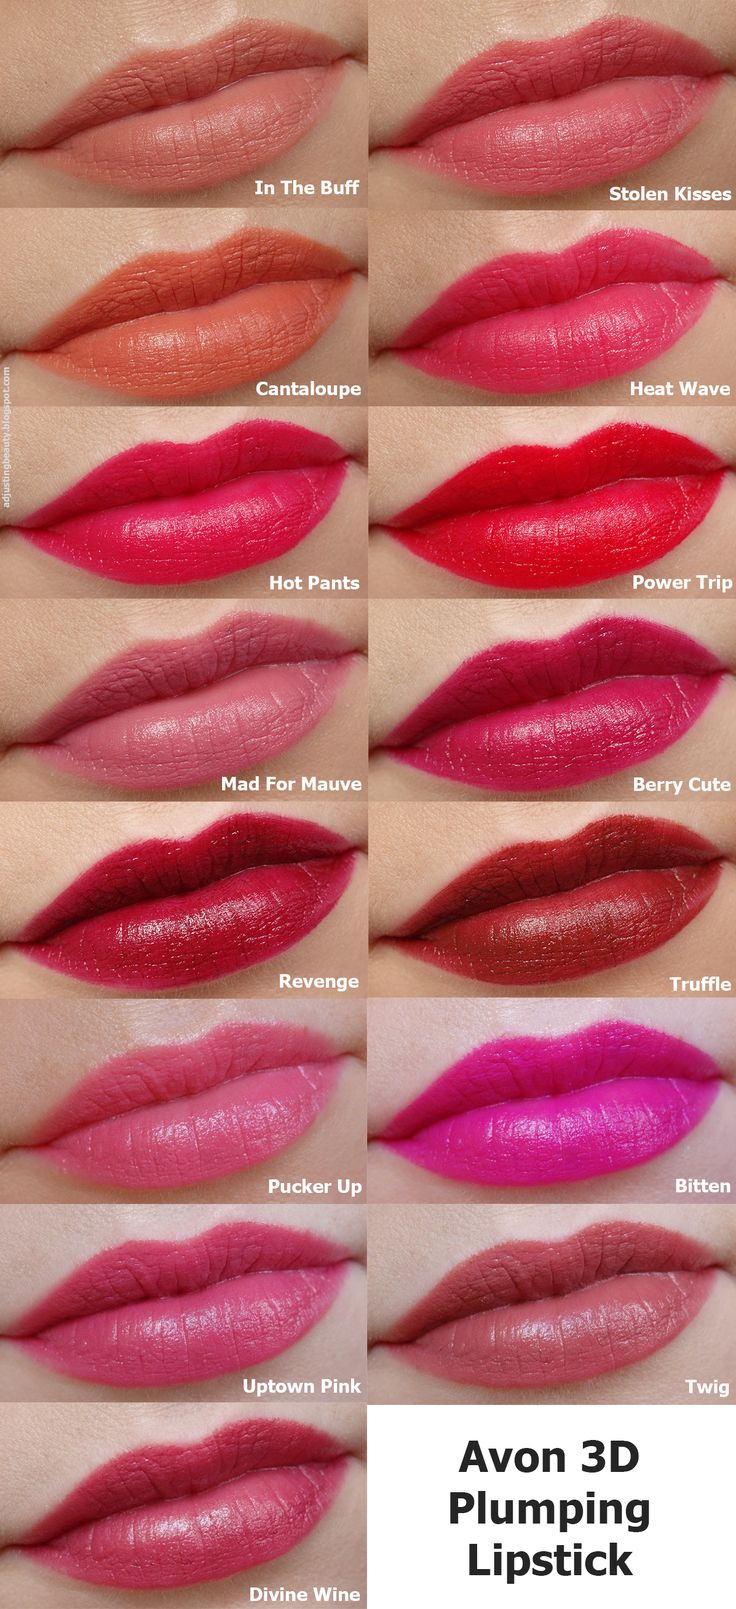 Review of Avon 3D Plumping lipsticks (Beyond Color lipsticks) all 15 shades: In The Buff, Stolen Kisses, Cantaloupe, Heat Wave, Hot Pants, Power Trip, Mad For Mauve, Berry Cute, Revenge, Truffle, Pucker Up, Bitten, Uptown Pink, Twig and Divine Wine.